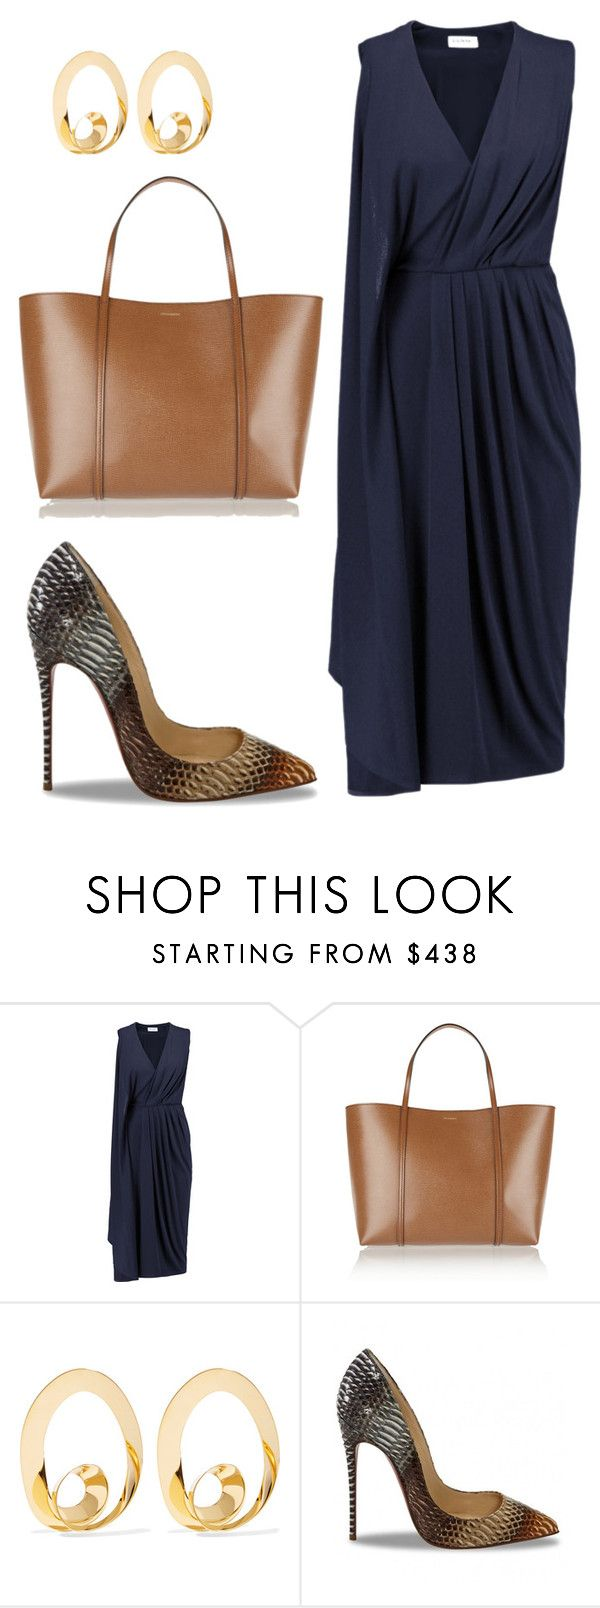 e630a9df659 77 best Shopping images on Pinterest